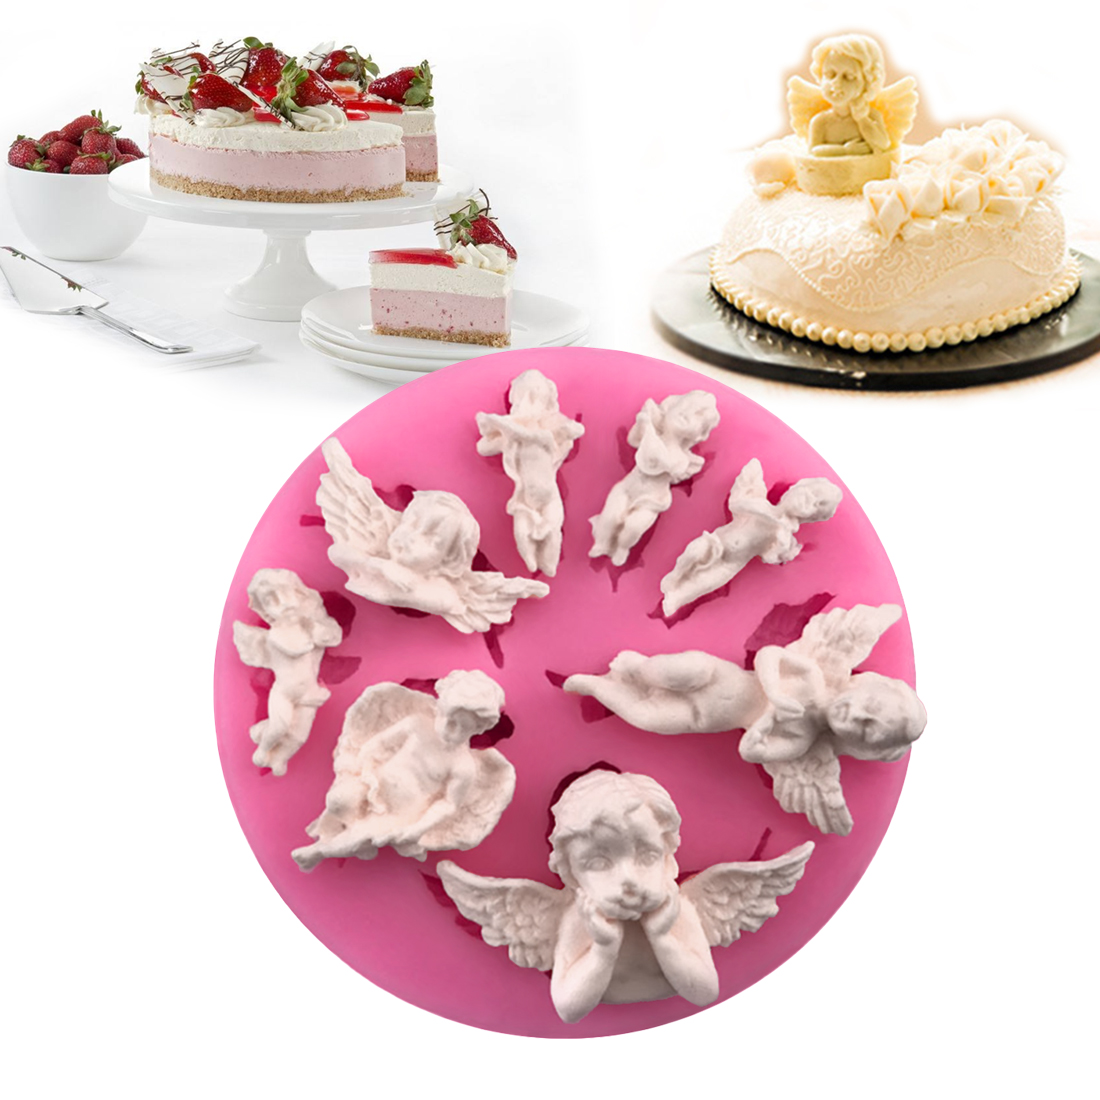 Chocolate Soap Pastry Baking Tools Mold Cake Decoration Kitchen Accessories